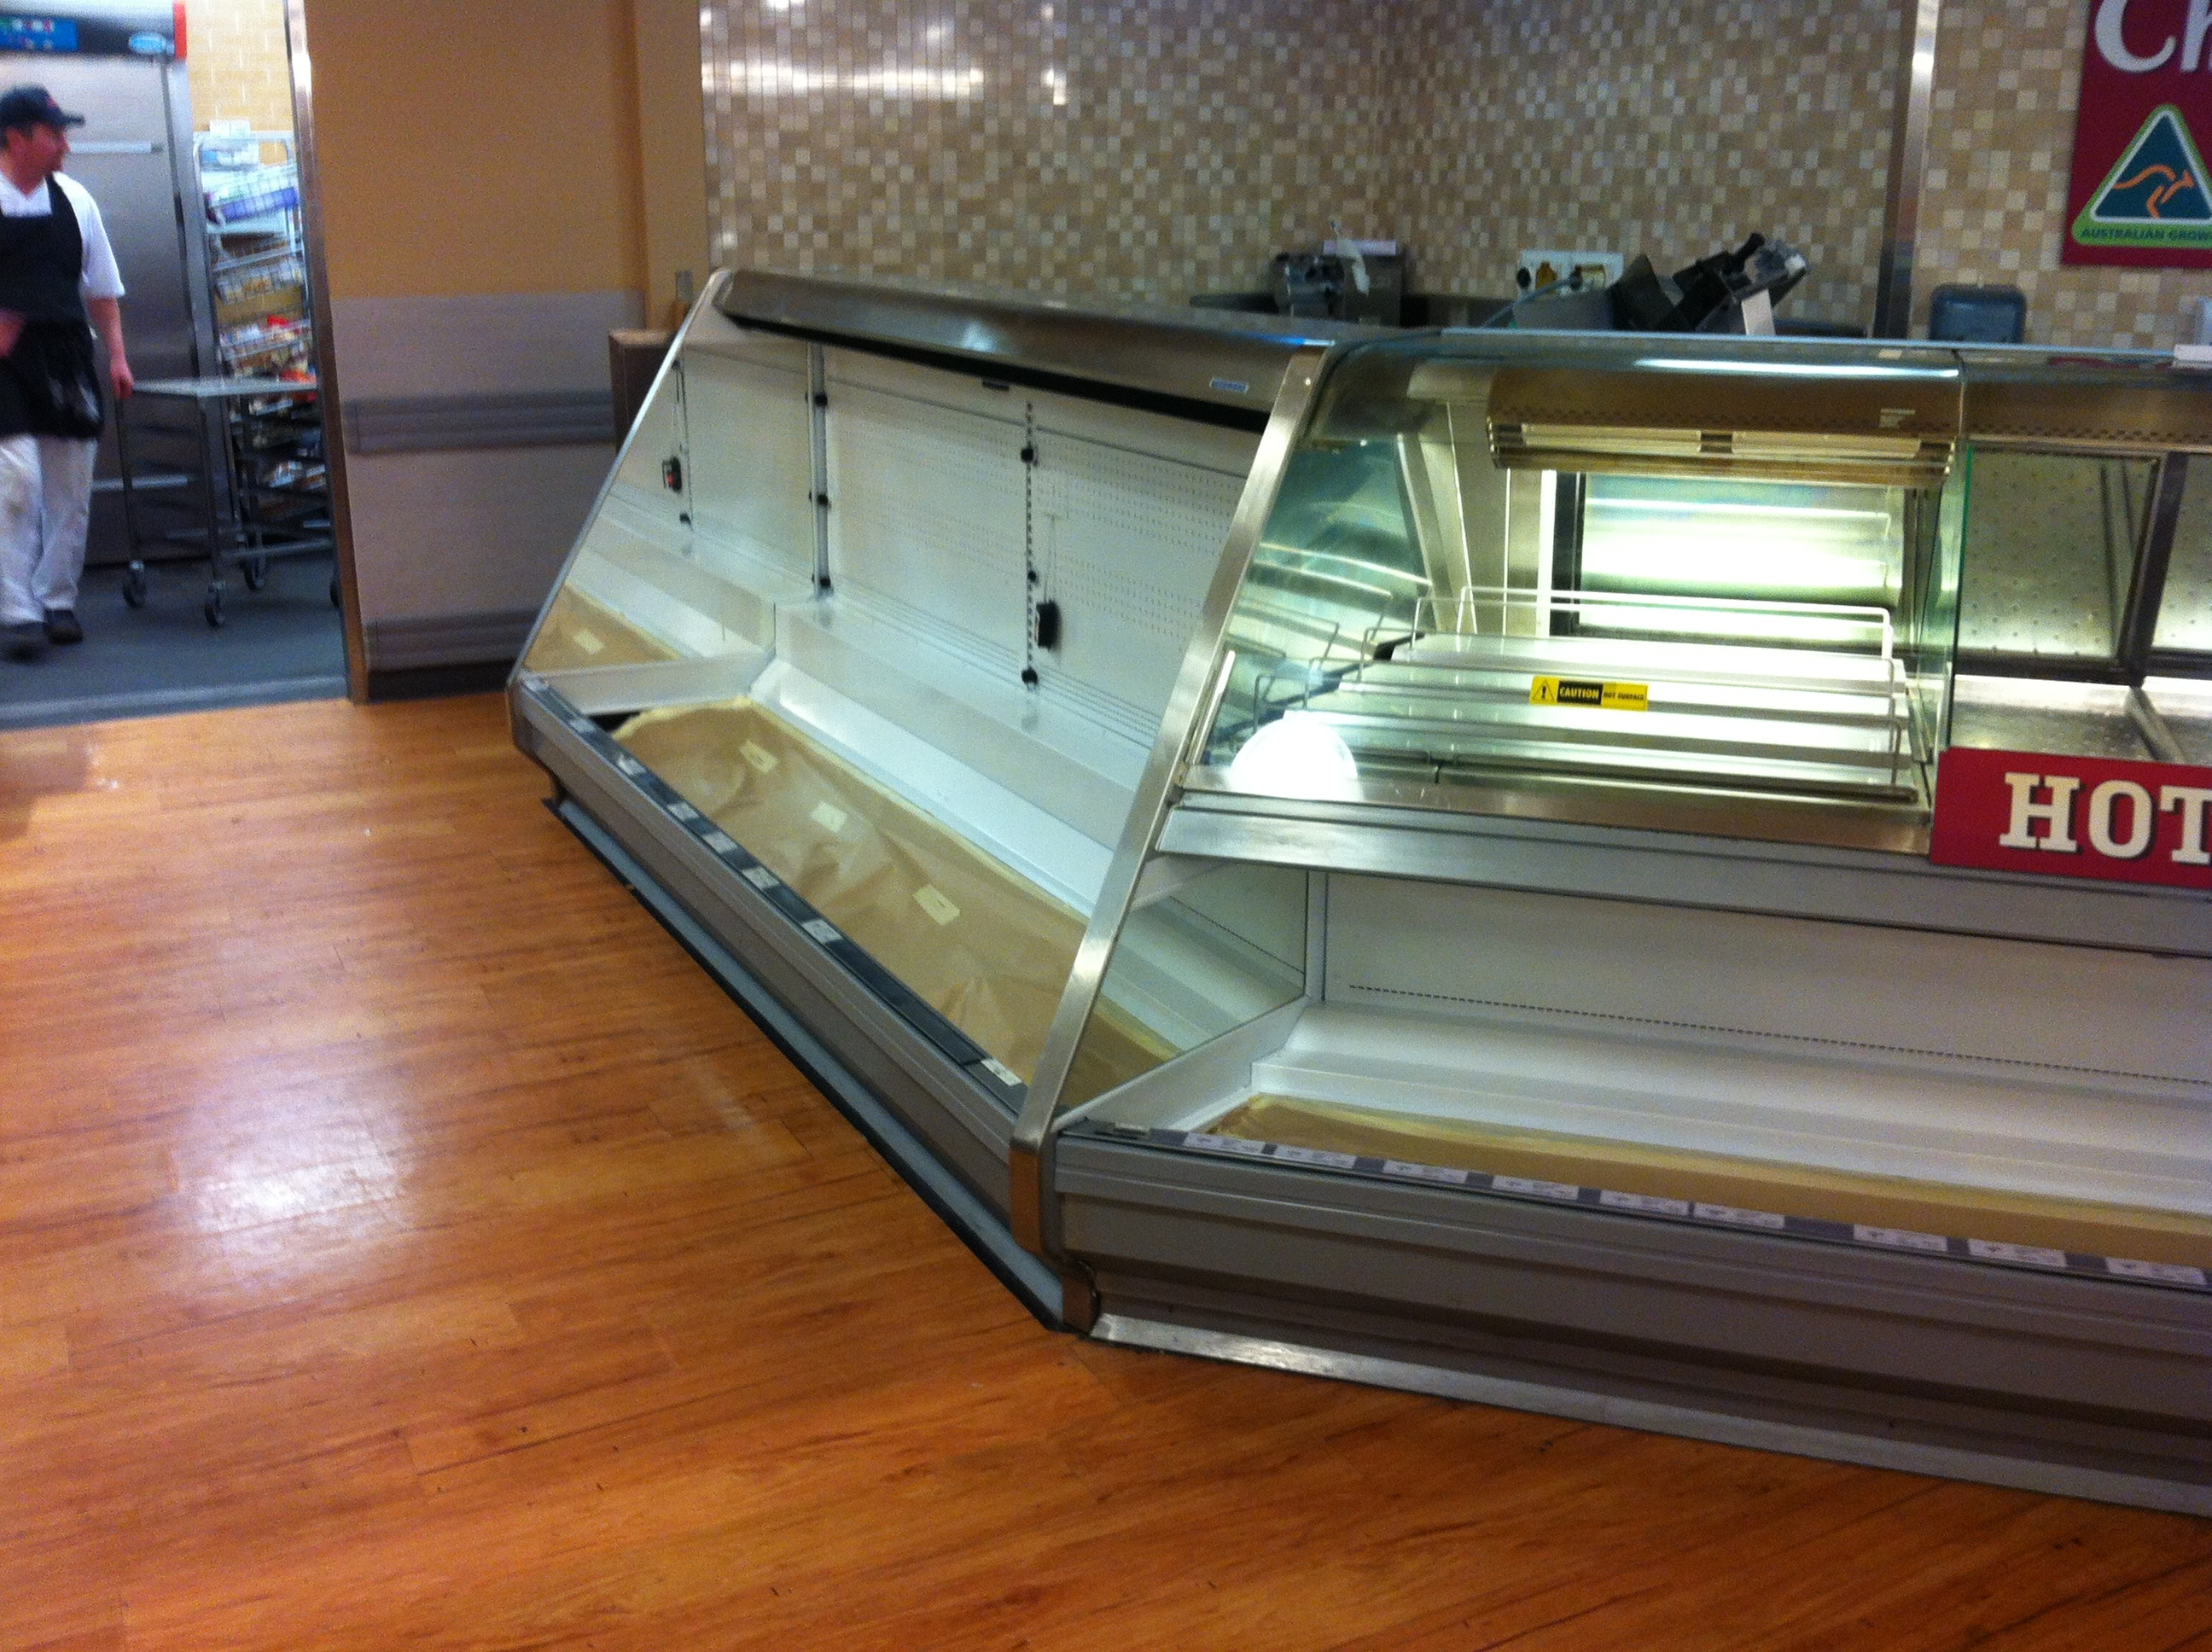 Progress photo of Deli case with electrostatic spray and fabrication works completed onsite